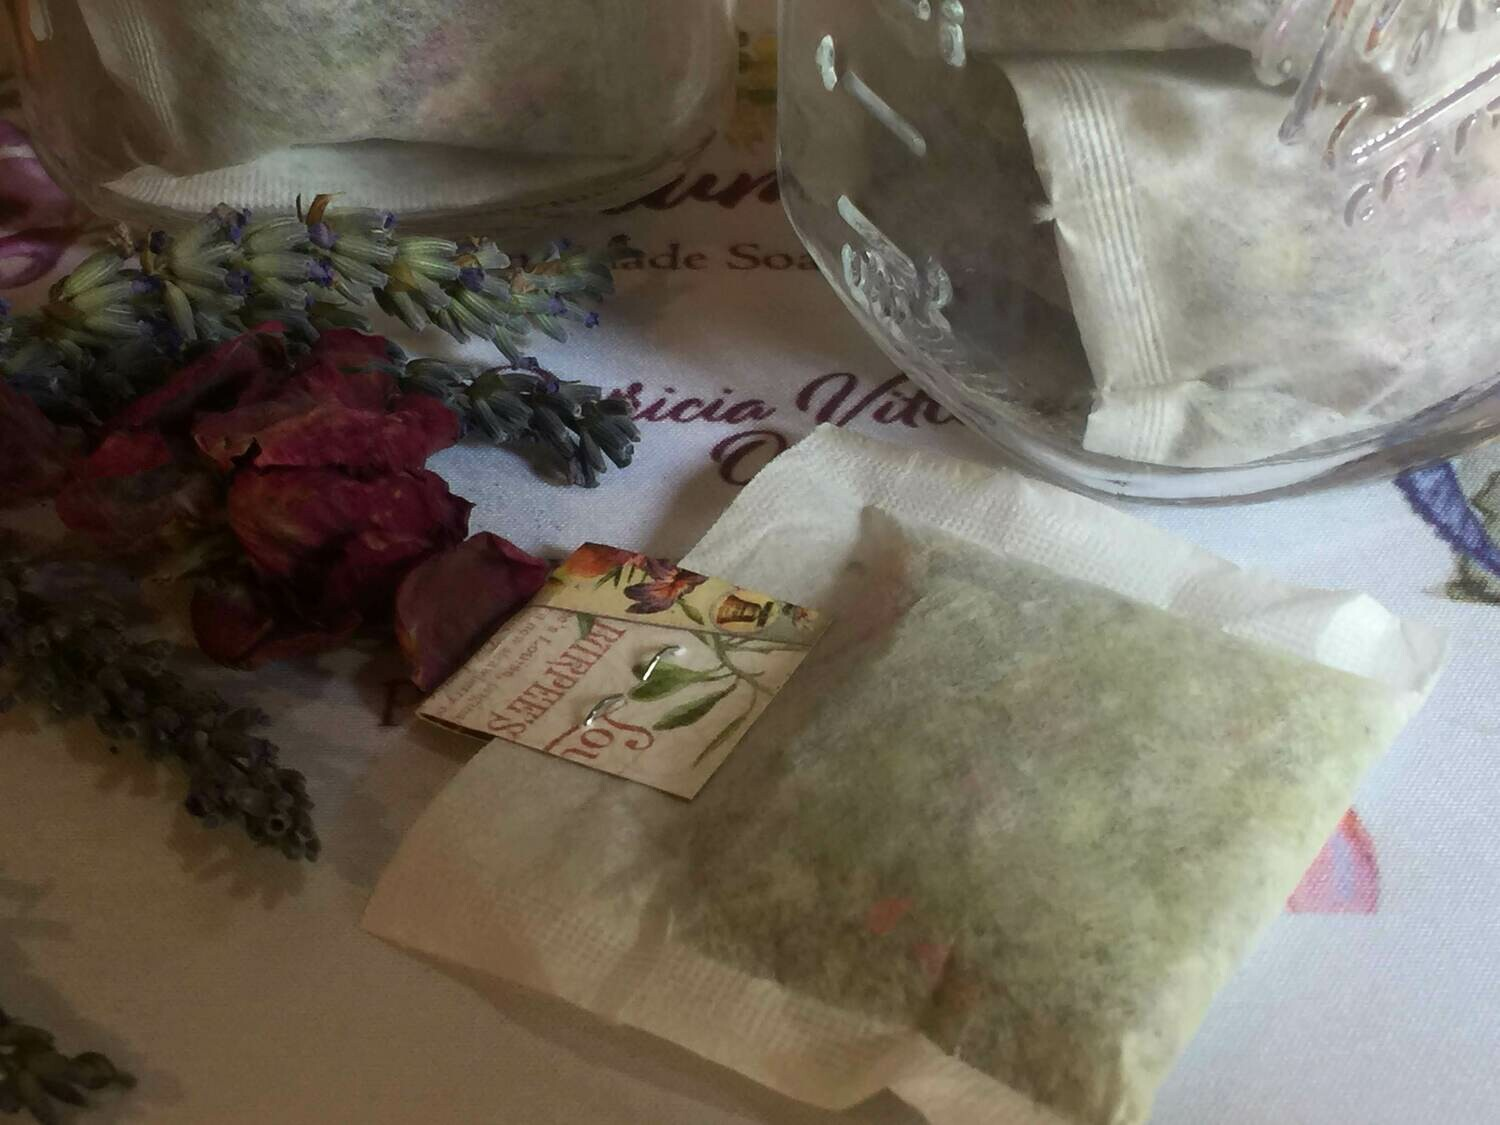 White Lily & Aloe Bath Tea Bags in Glass Jar